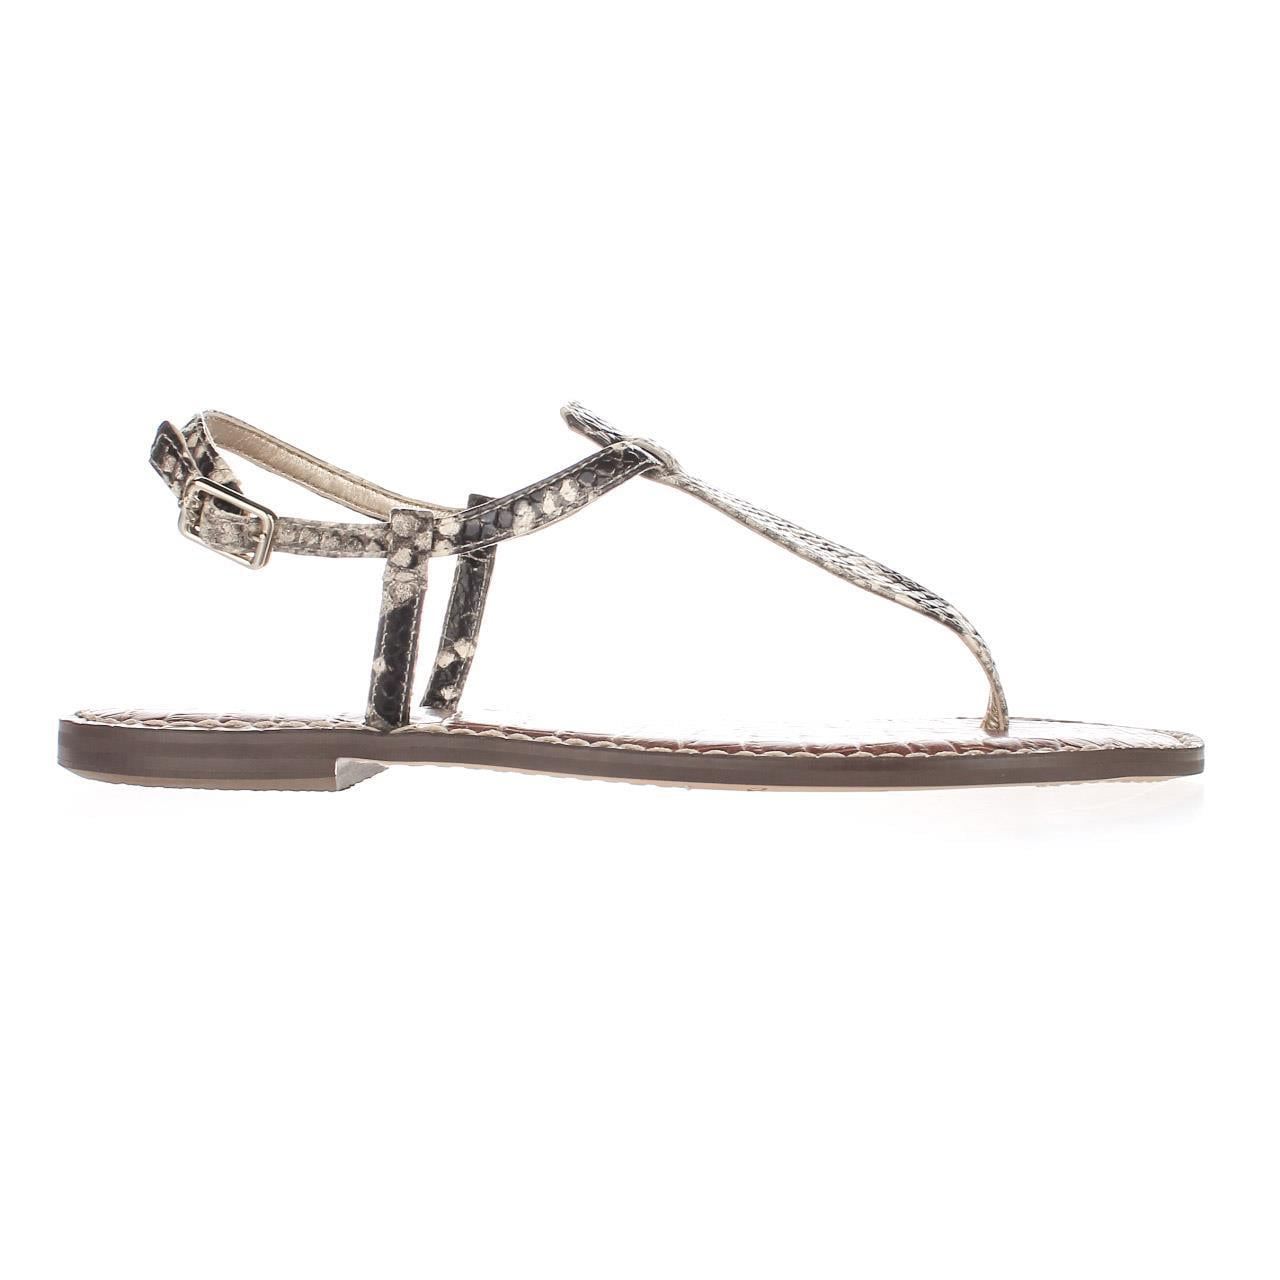 193df7866a510c Sam Edelman - Womens Sam Edelman Gigi Flat Sandals - Putty Snake -  Walmart.com